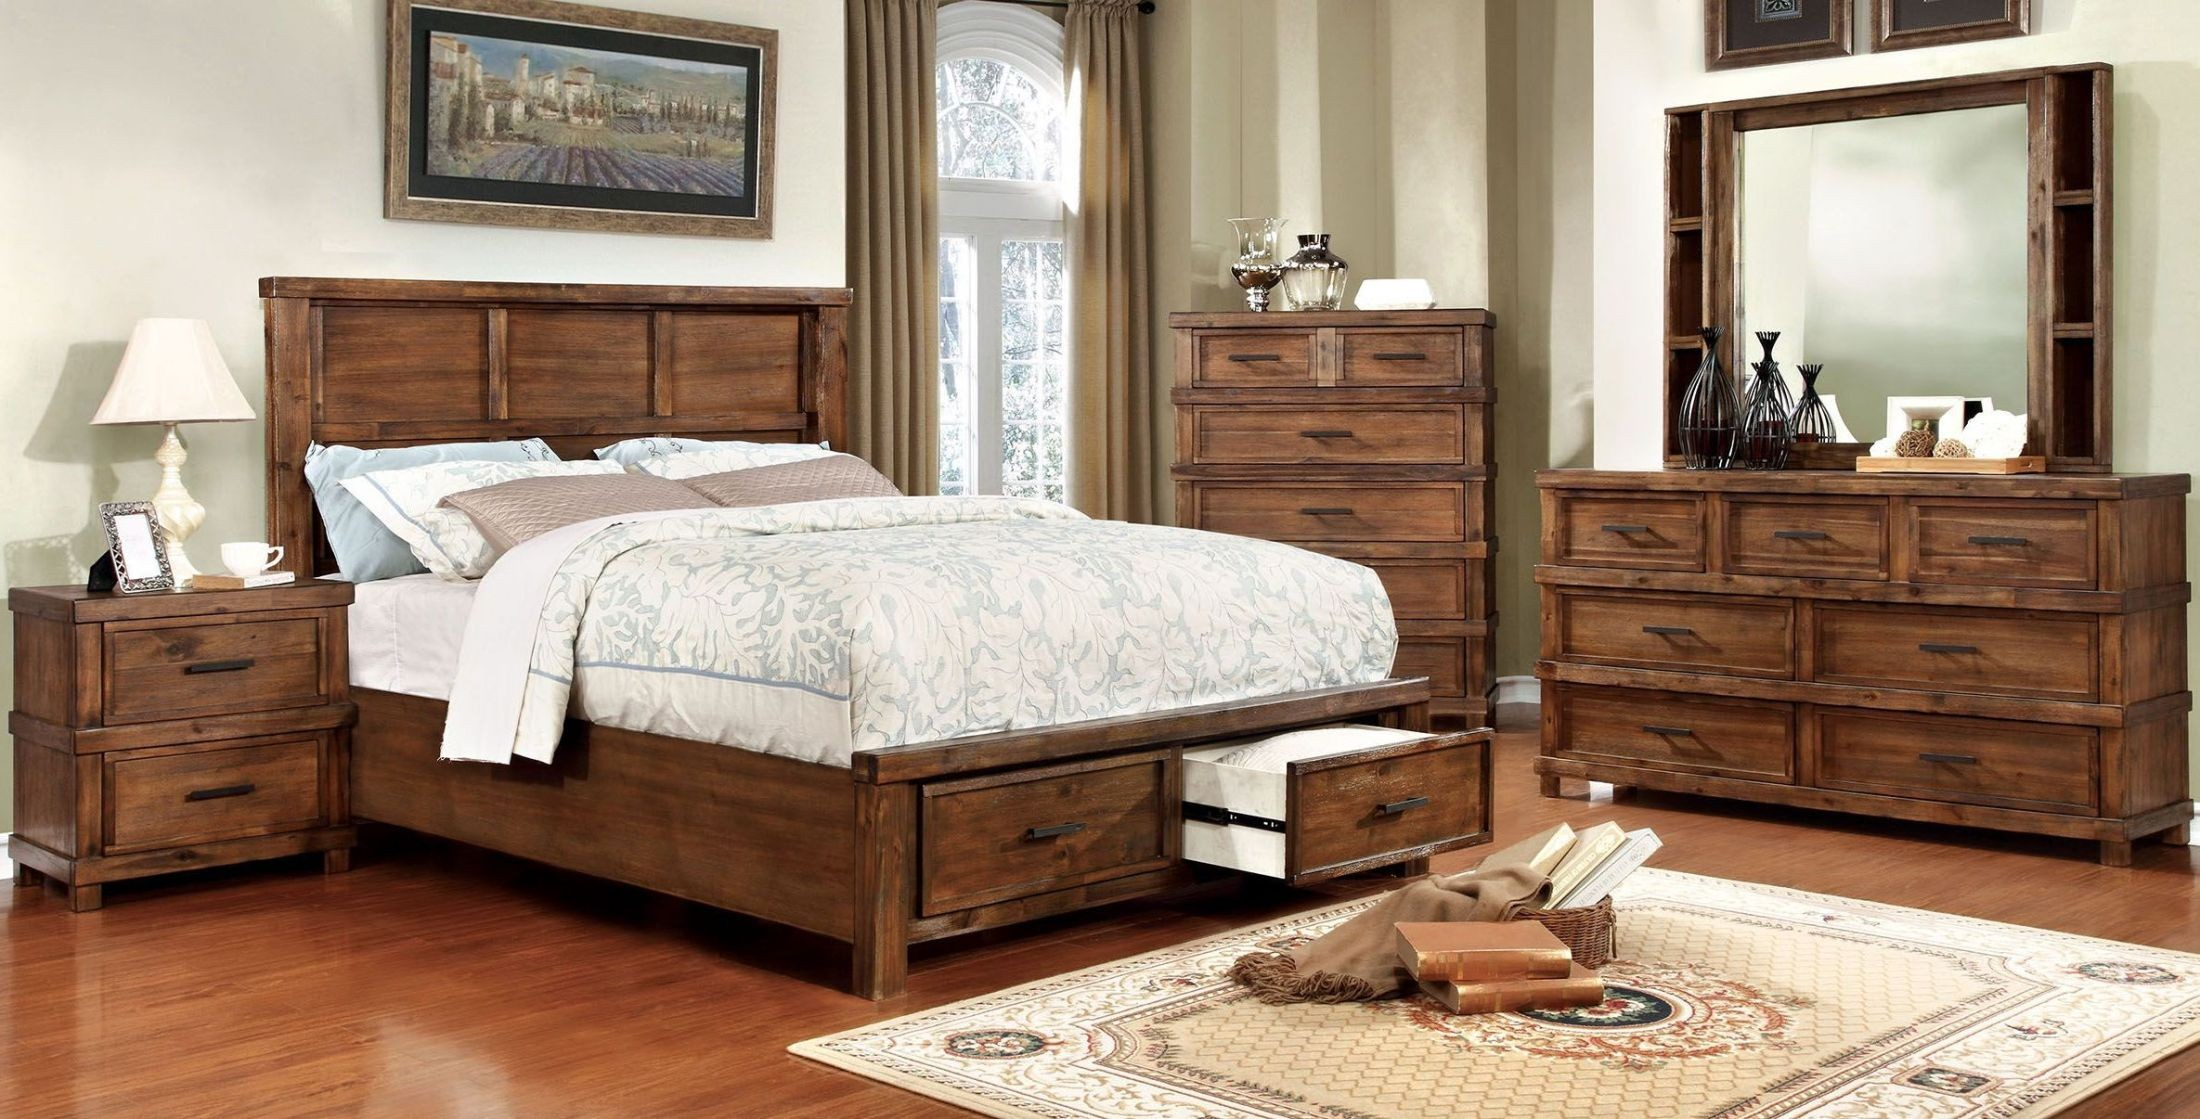 baddock antique oak panel storage bedroom set  cm7692q Wall Panel Bedroom Set Upholstery Panel Bedroom Sets